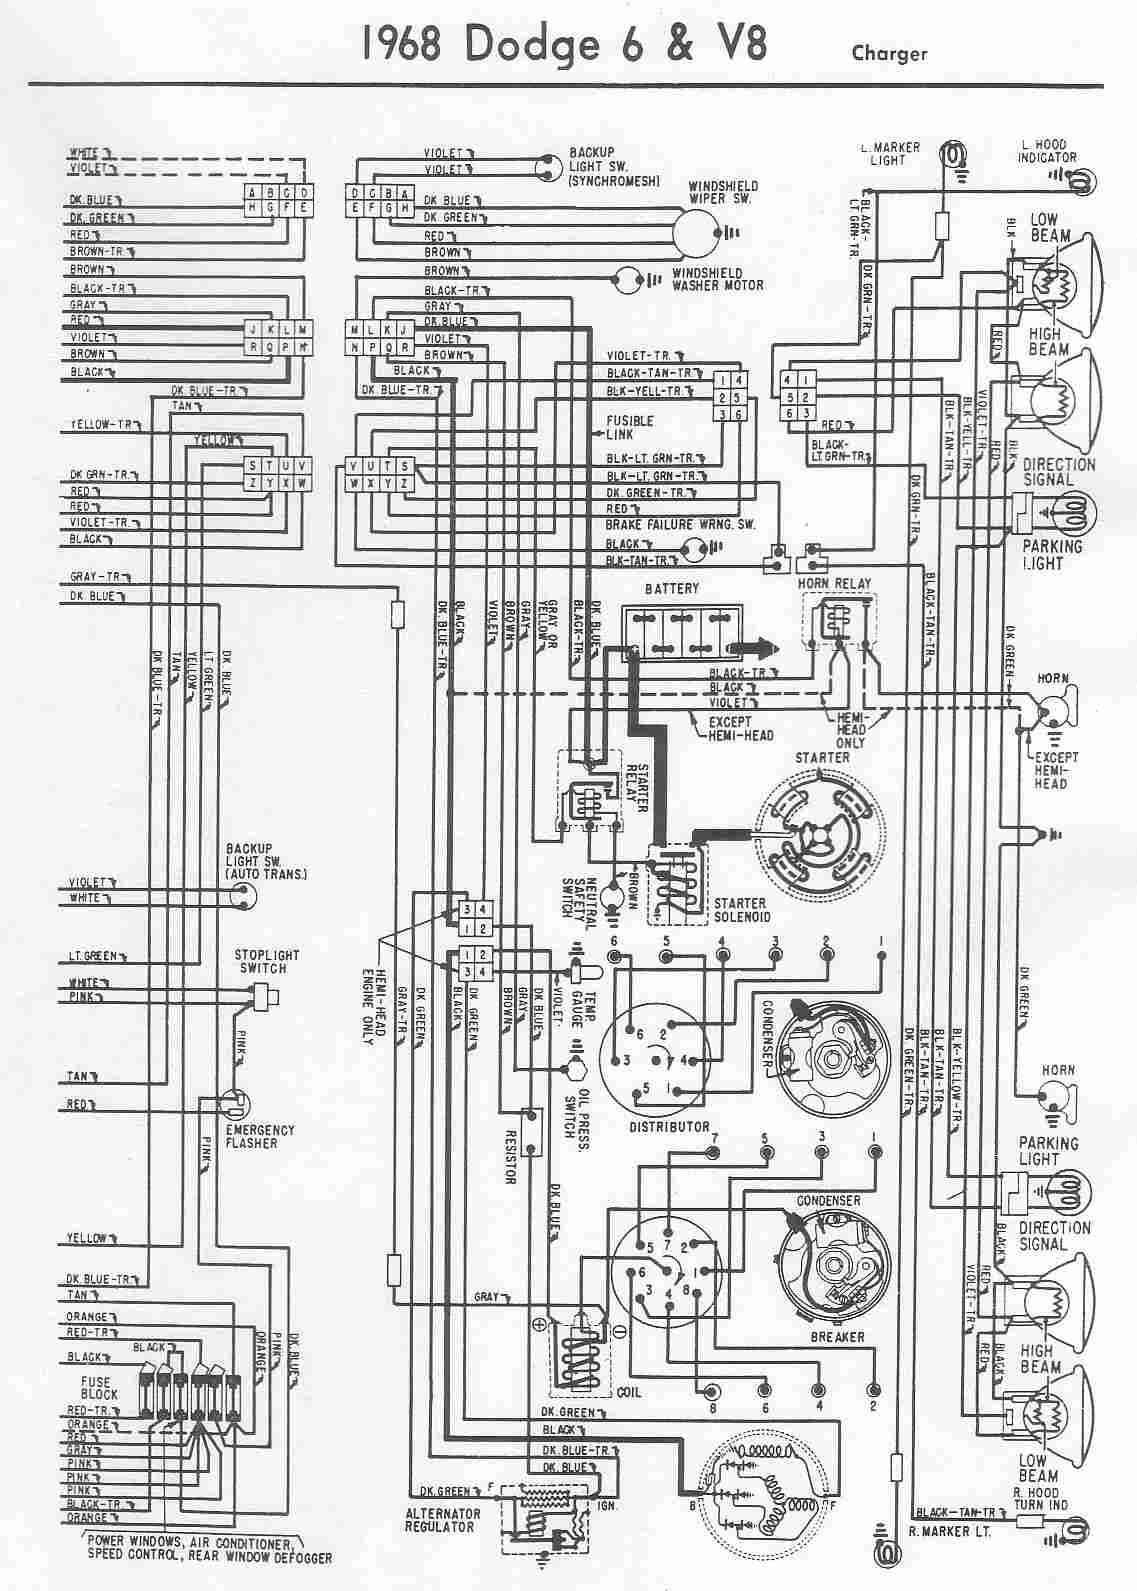 Dodge Car Manuals Wiring Diagrams Pdf Fault Codes 2012 Durango Diagram Download